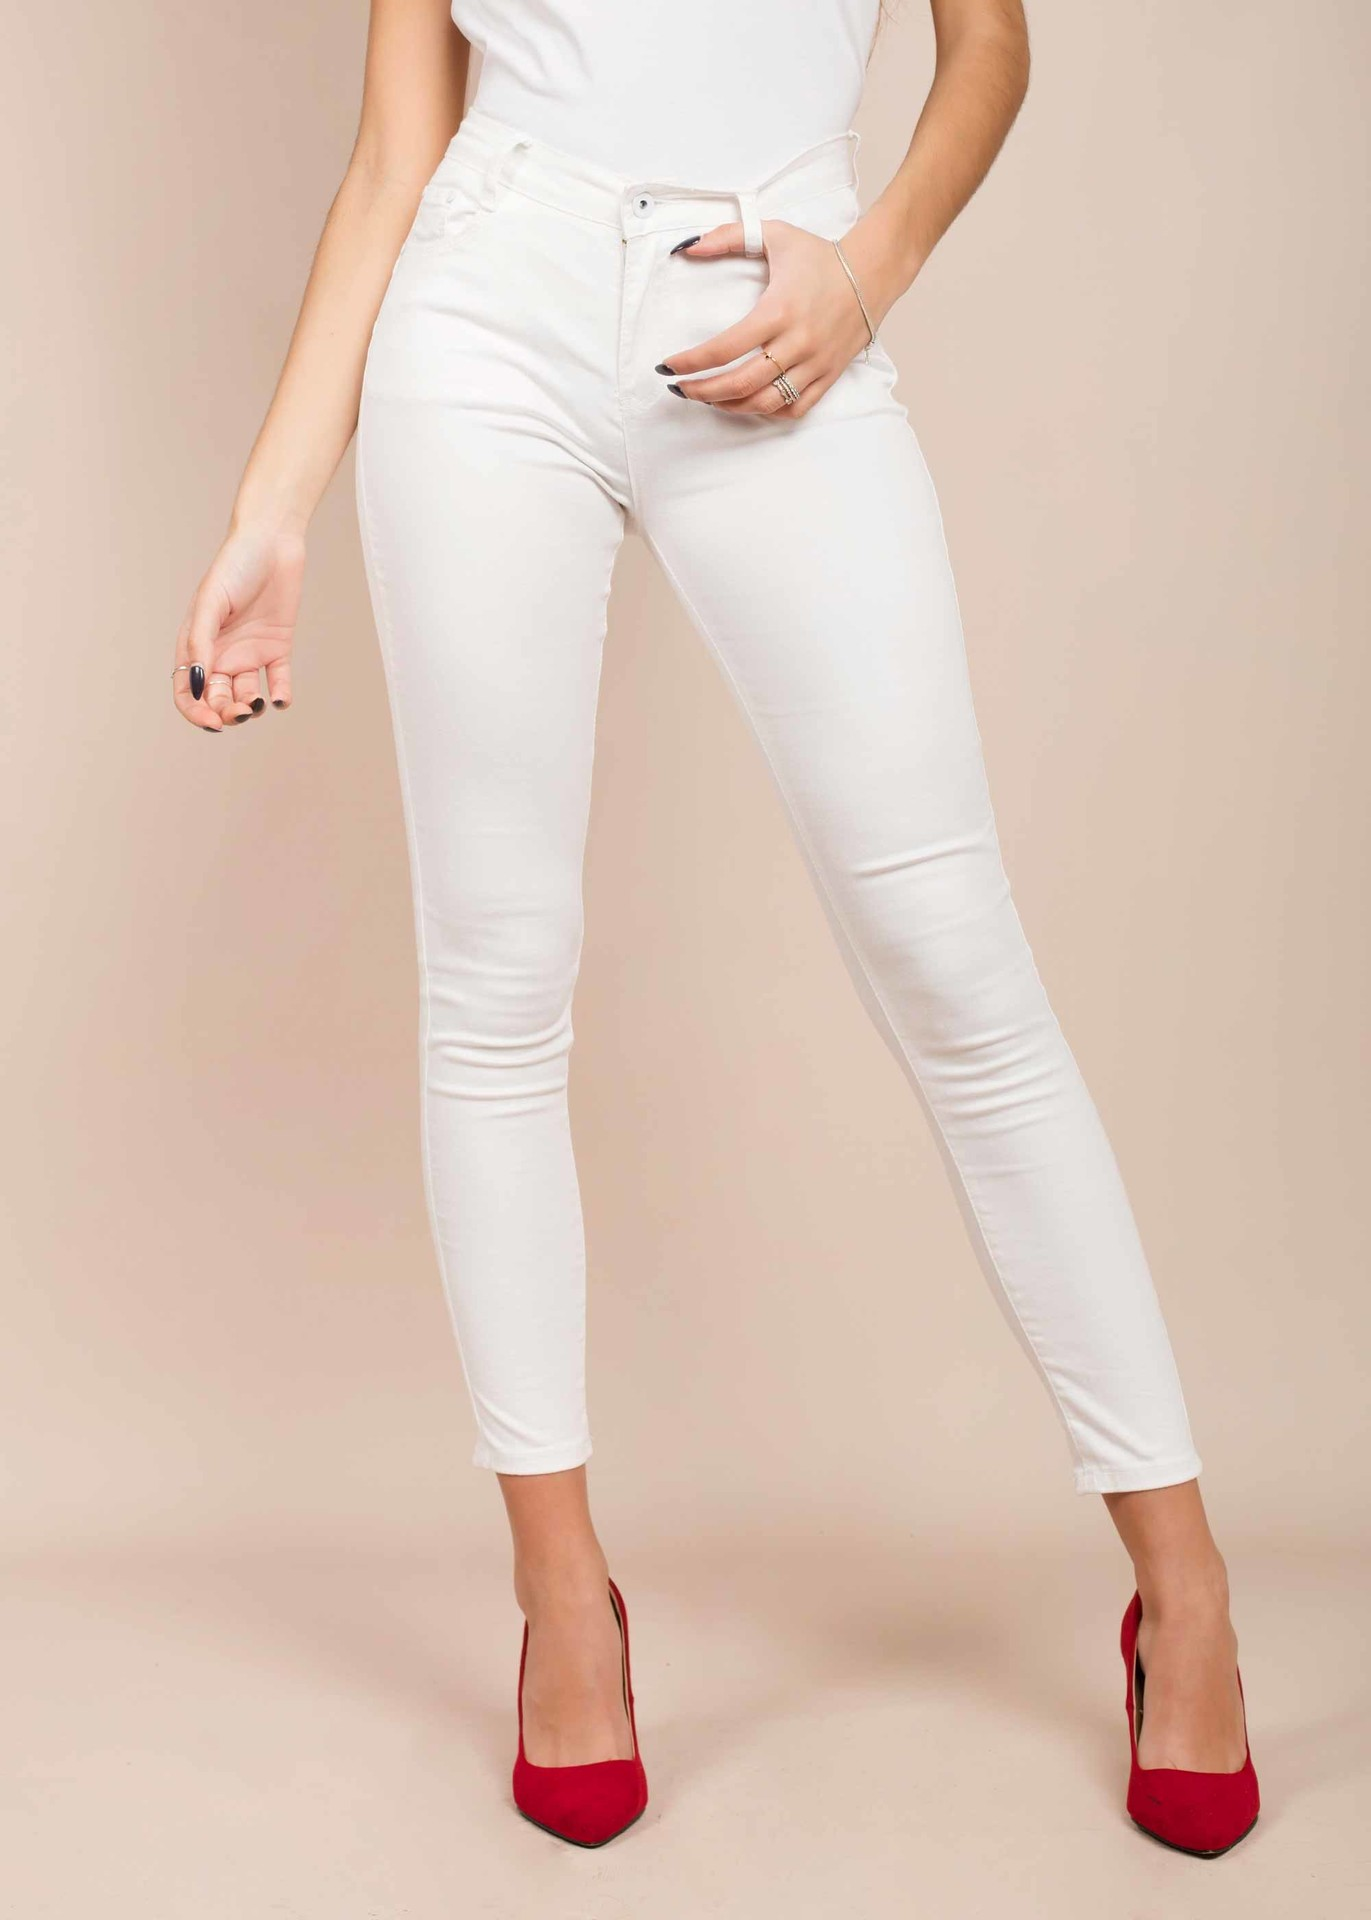 Pantalón blanco push up